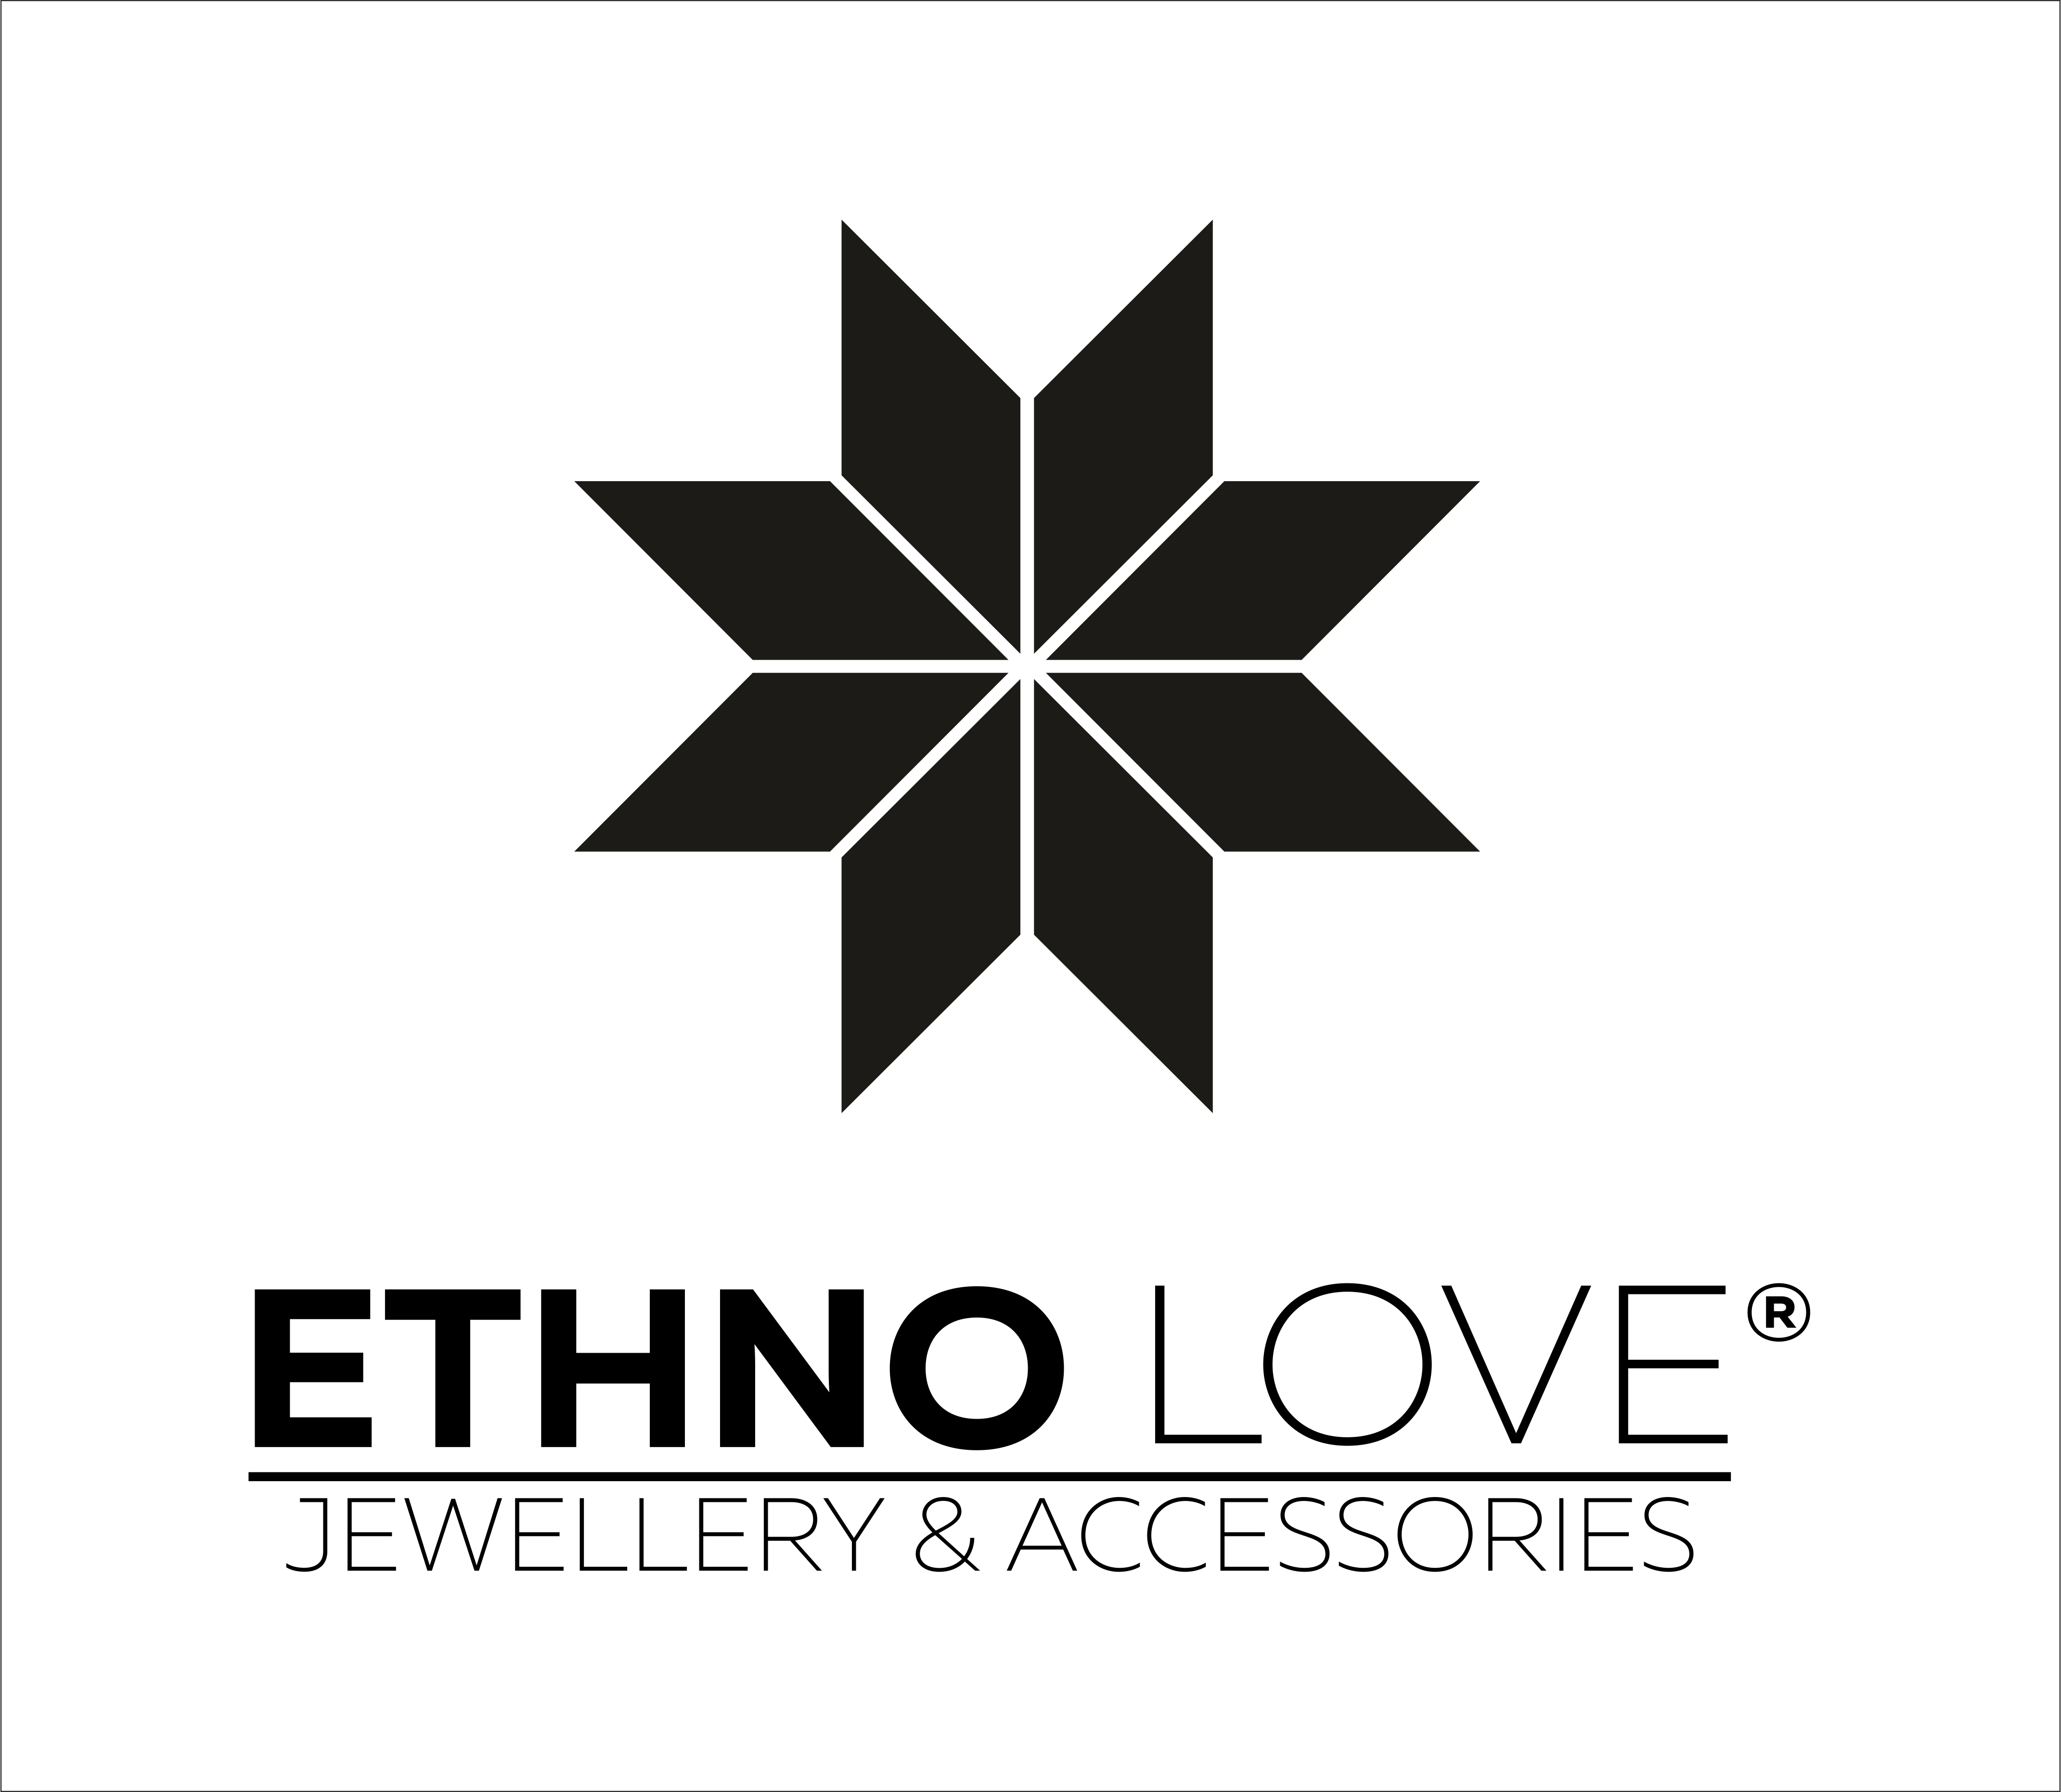 Ethno Love - Jewellery & Accessories